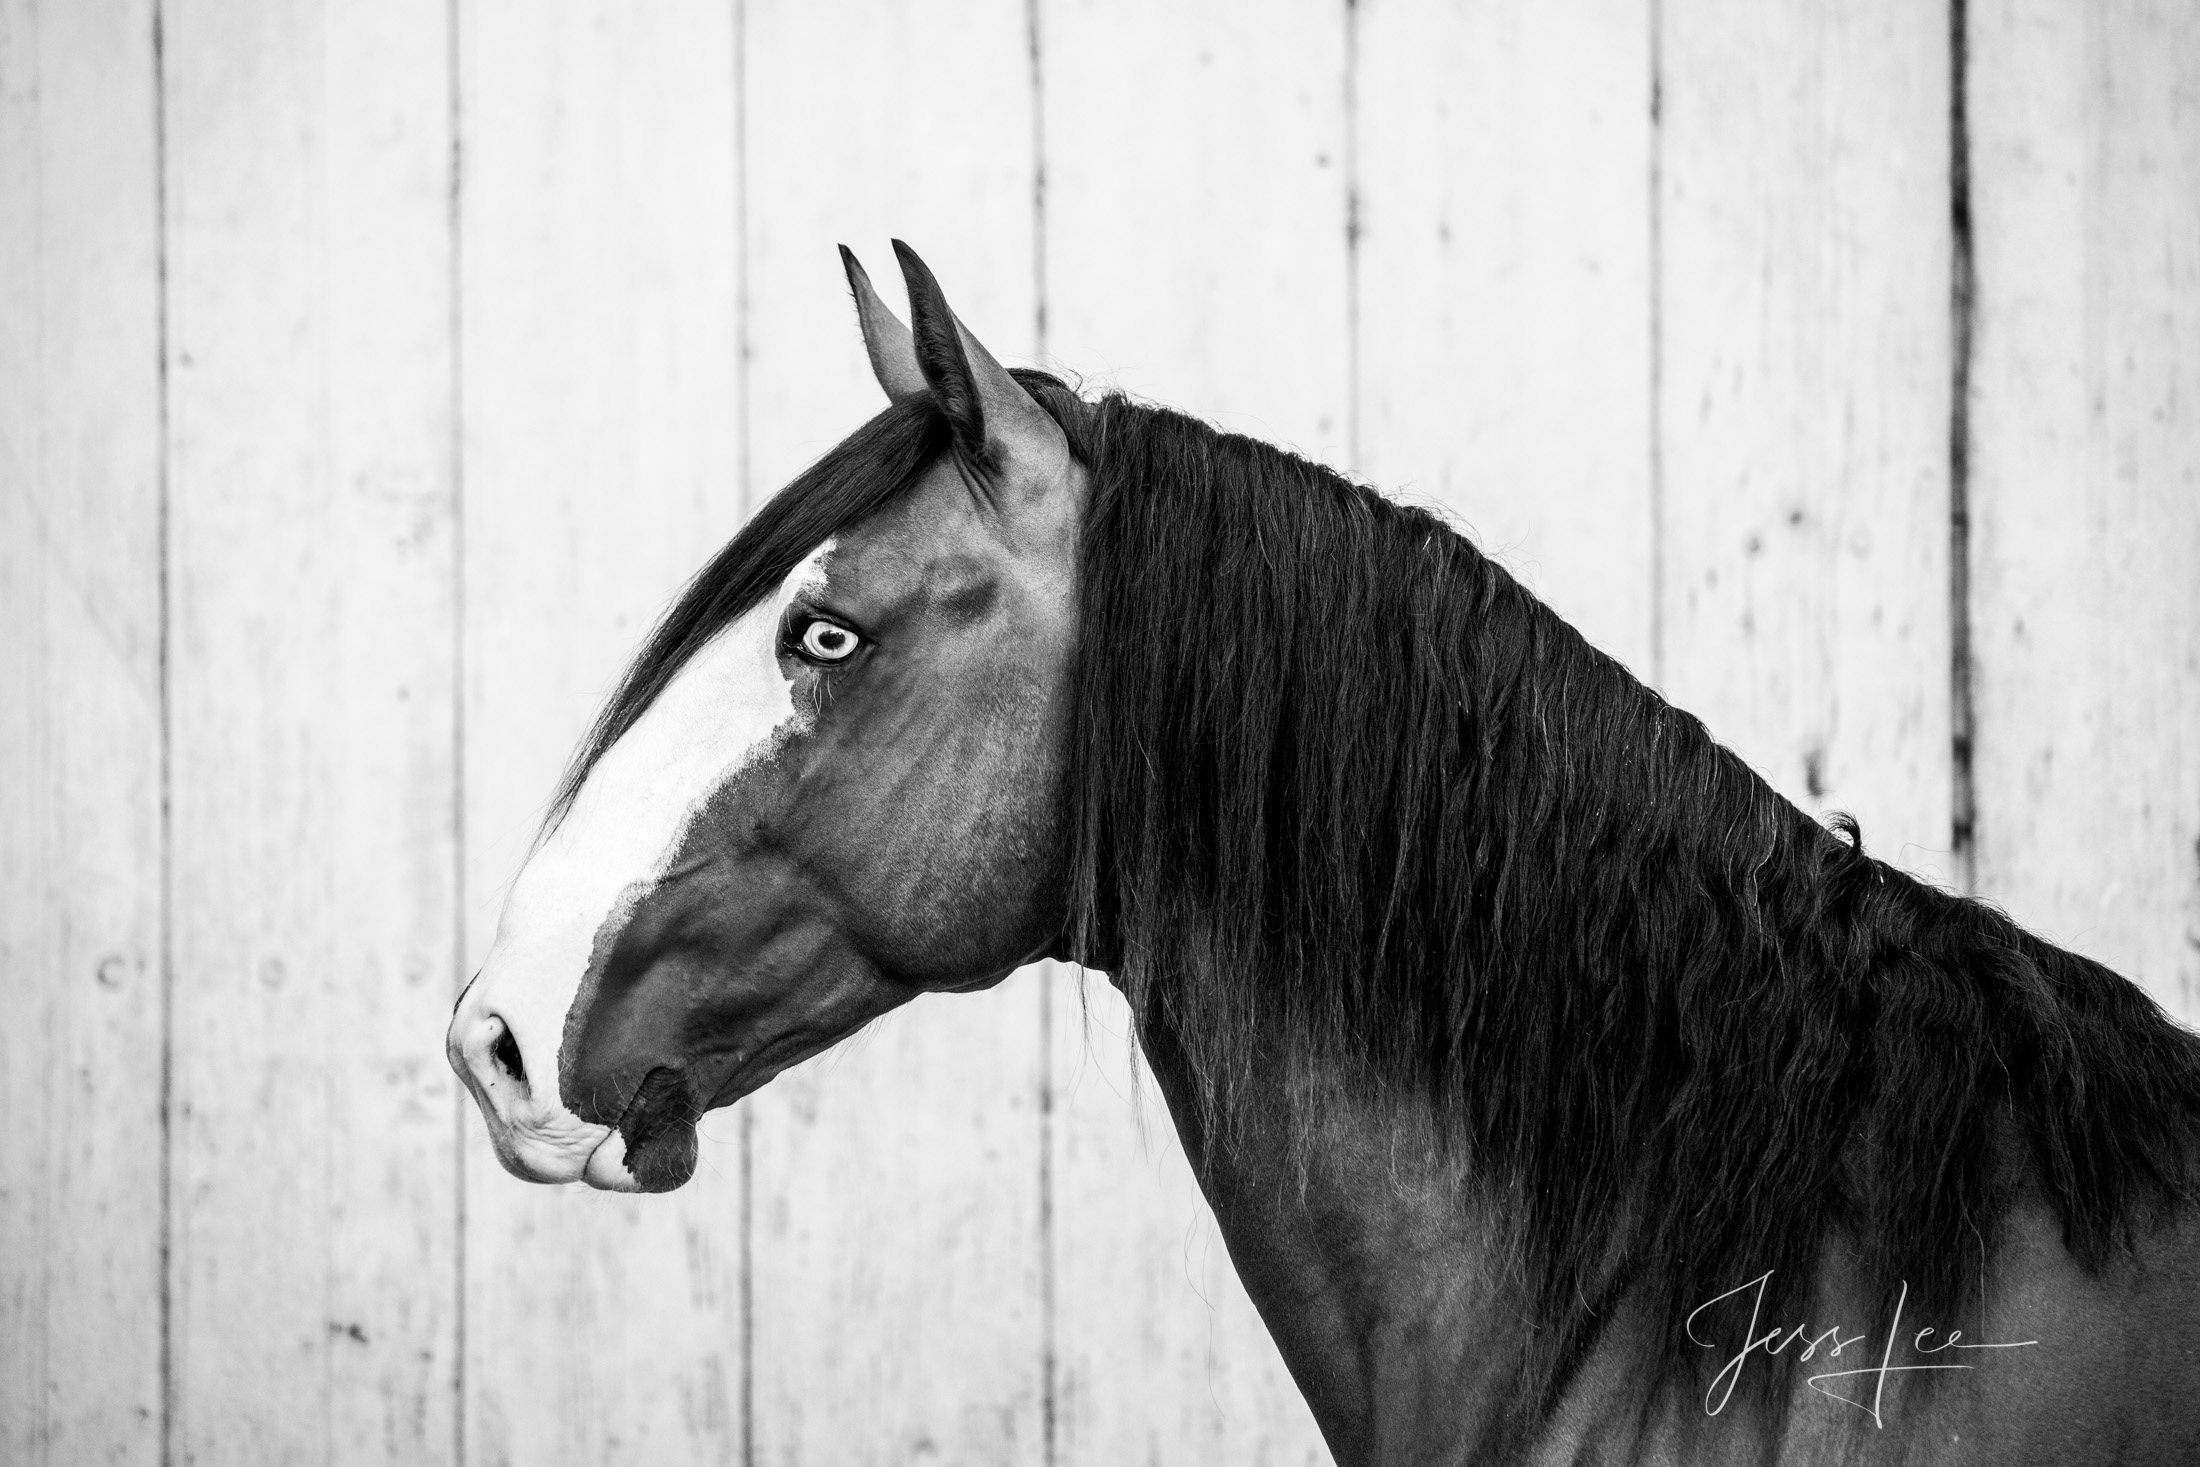 Camargue #1-1 Fine Art, Limited Edition, Luxurious photographic prints of the horses of the Camargue and Provence region of France...